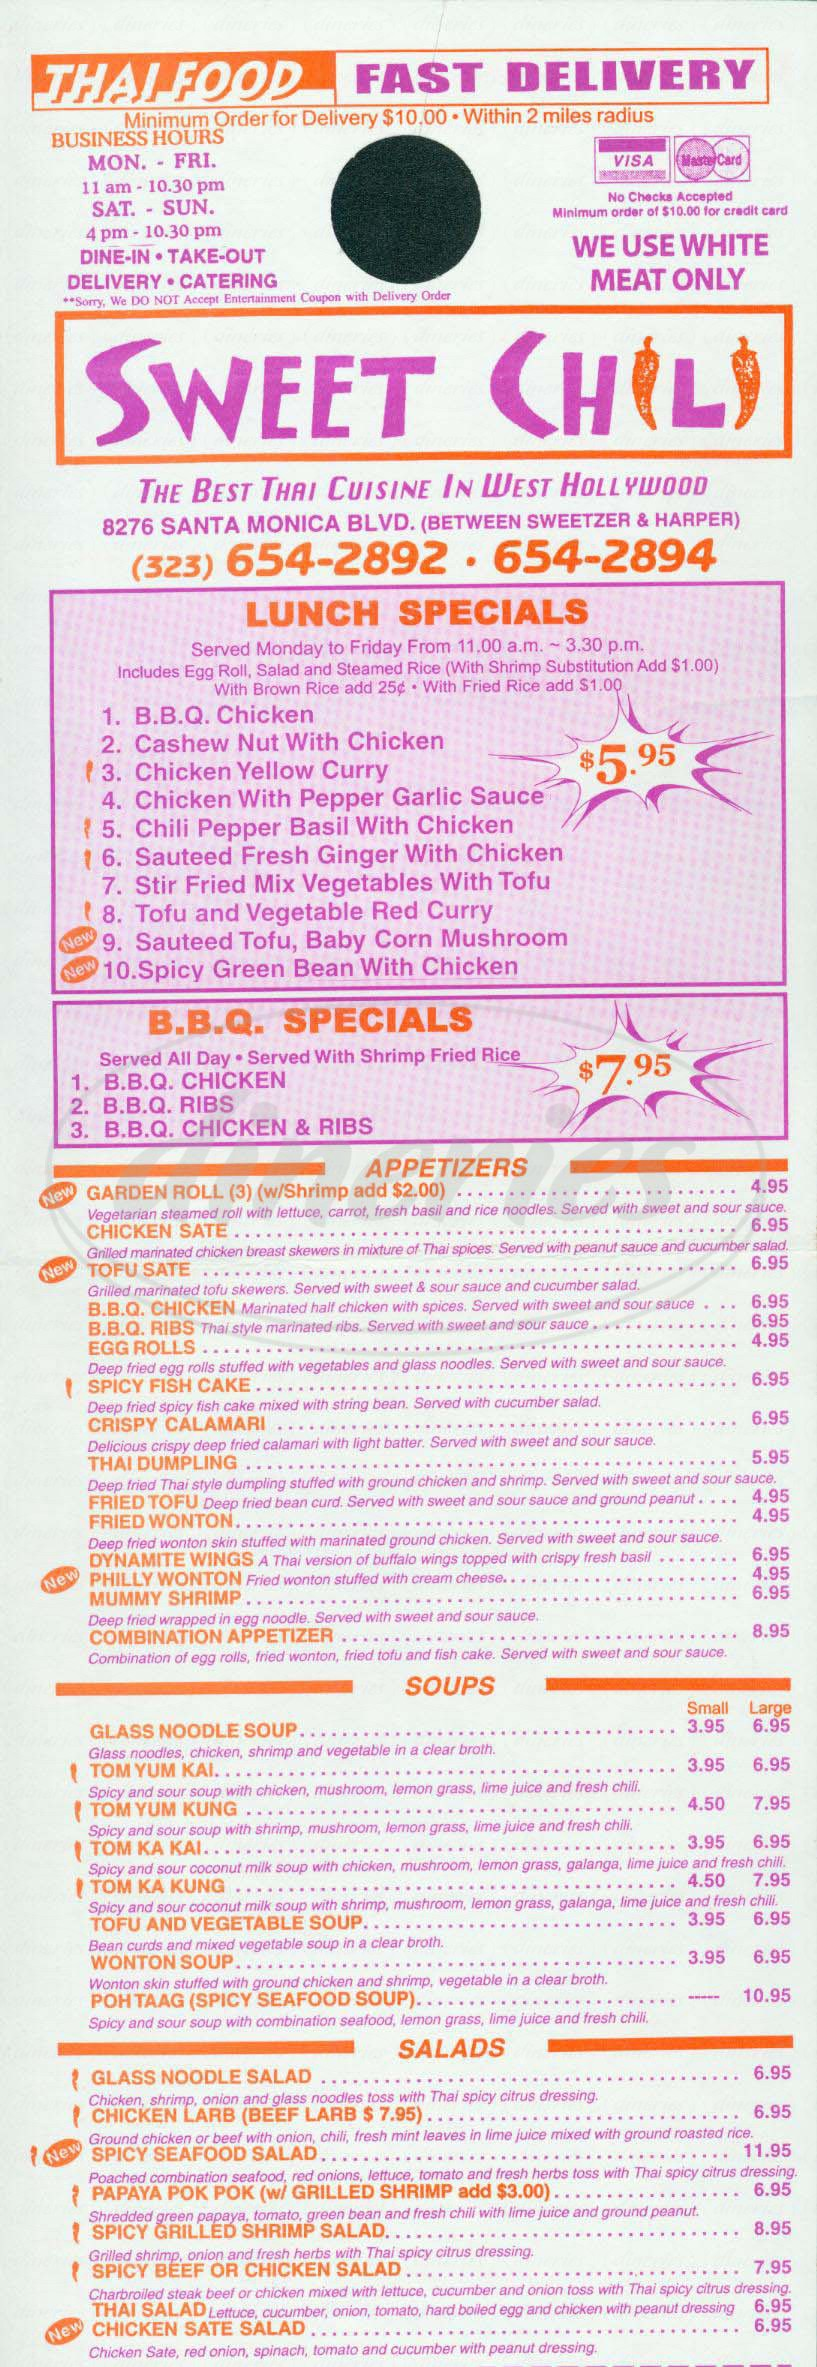 menu for Sweet Chili